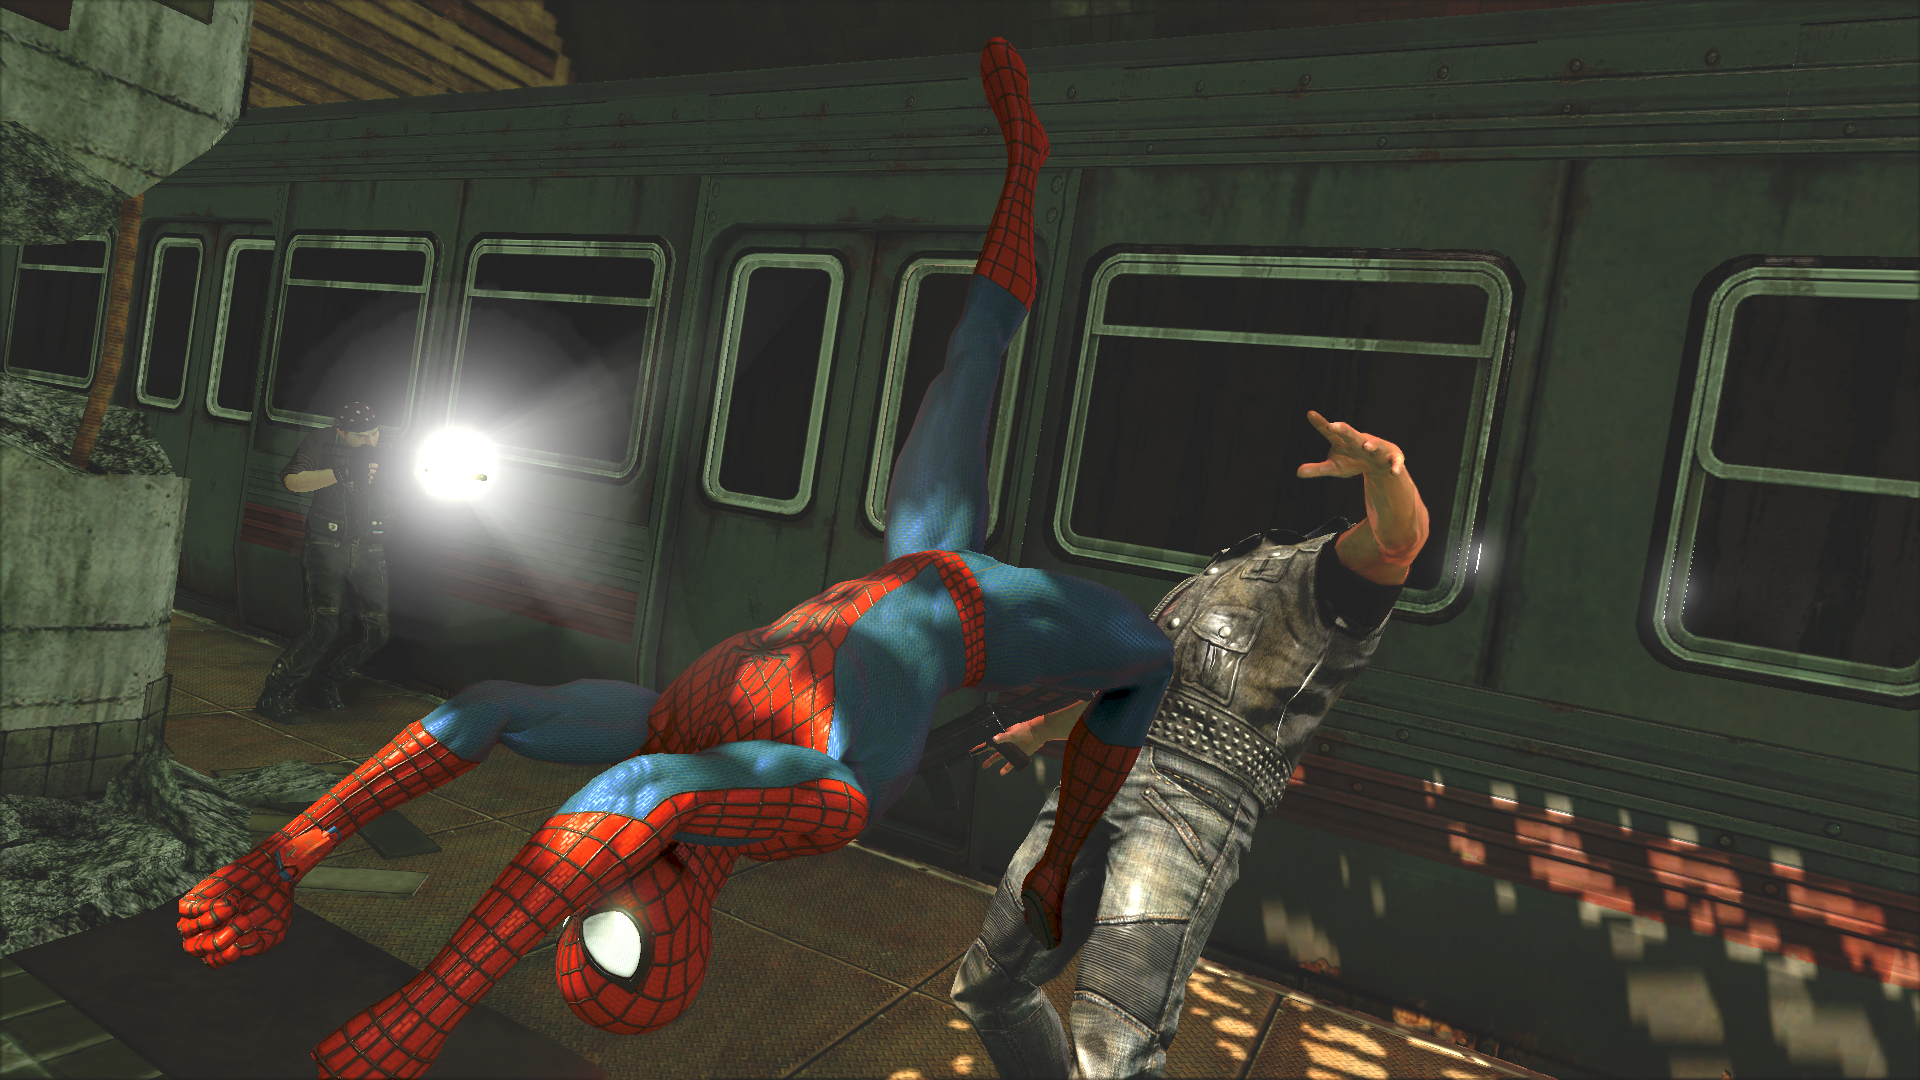 The amazing spider-man 1. 0. 3 download for iphone free.